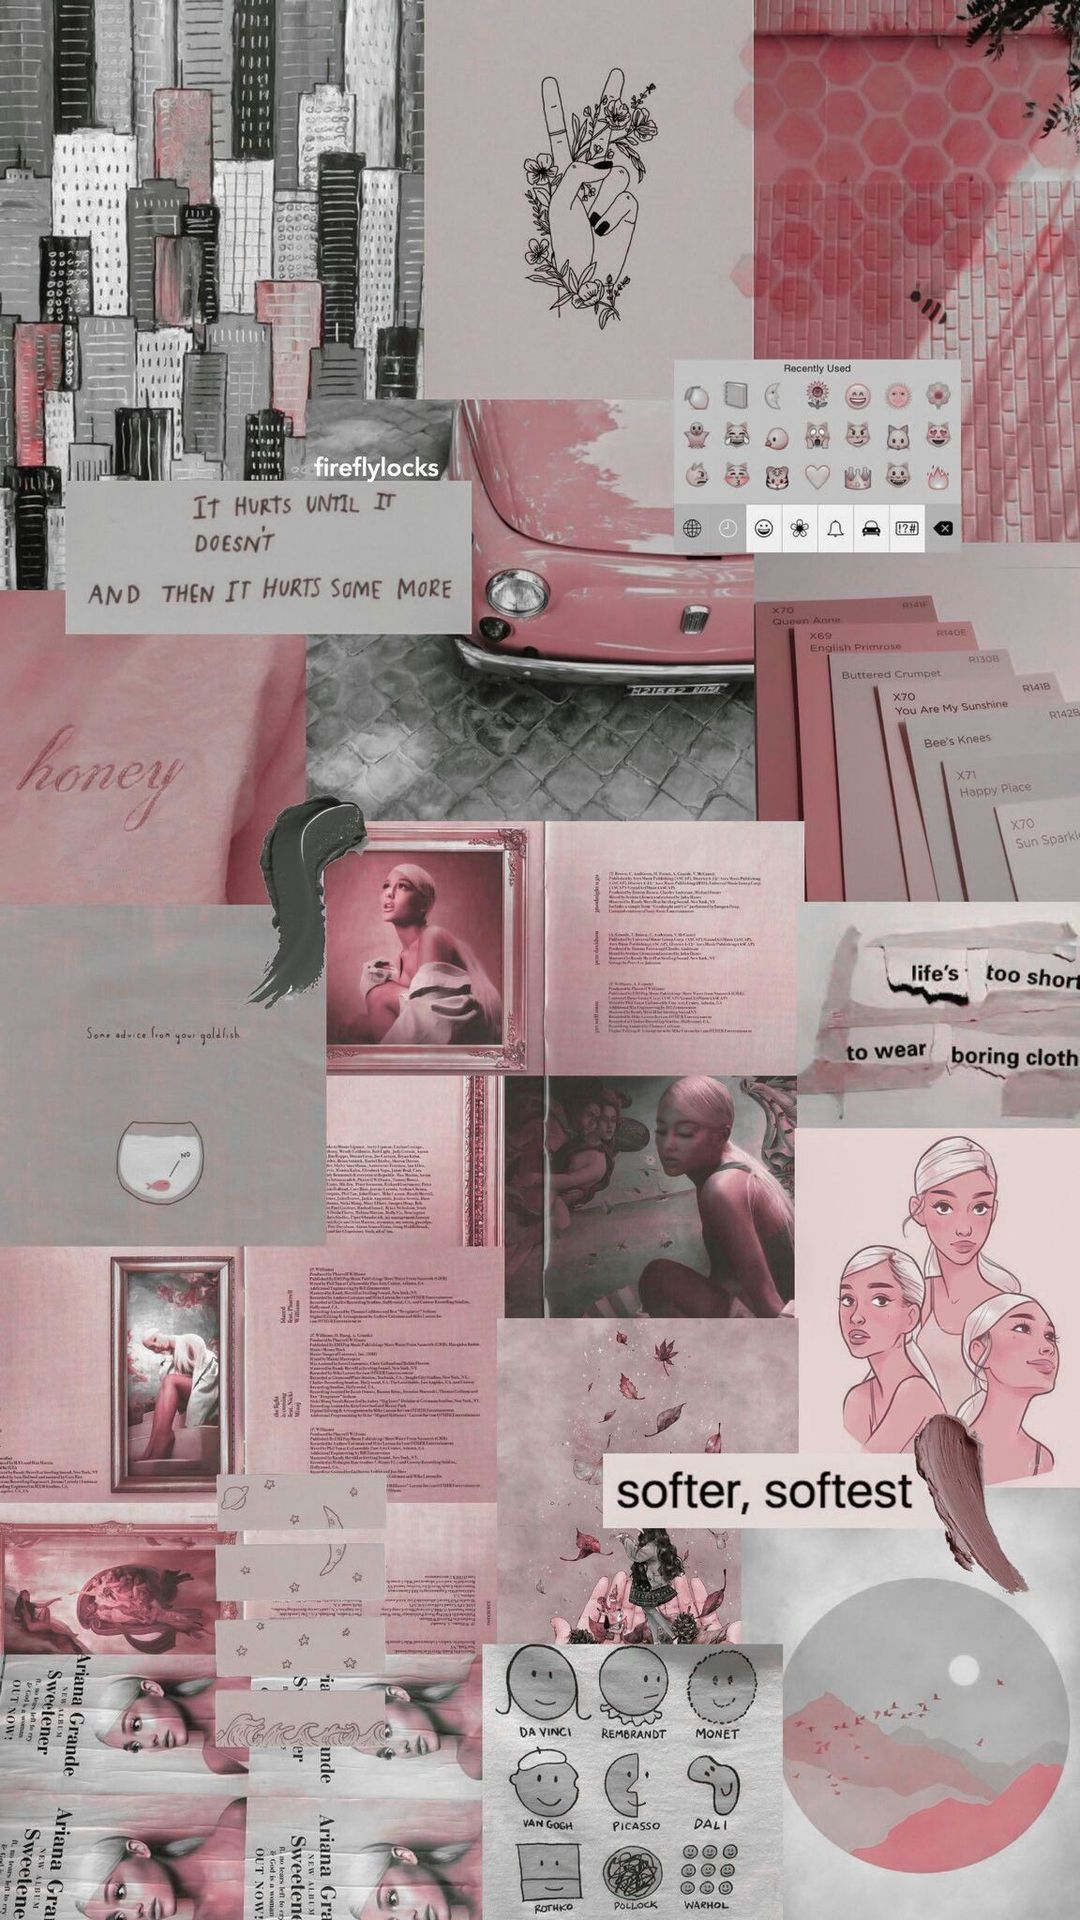 𝐀𝐞𝐬𝐭𝐡𝐞𝐭𝐢𝐜 ⸙[🧸]  - Collage Aesthetic